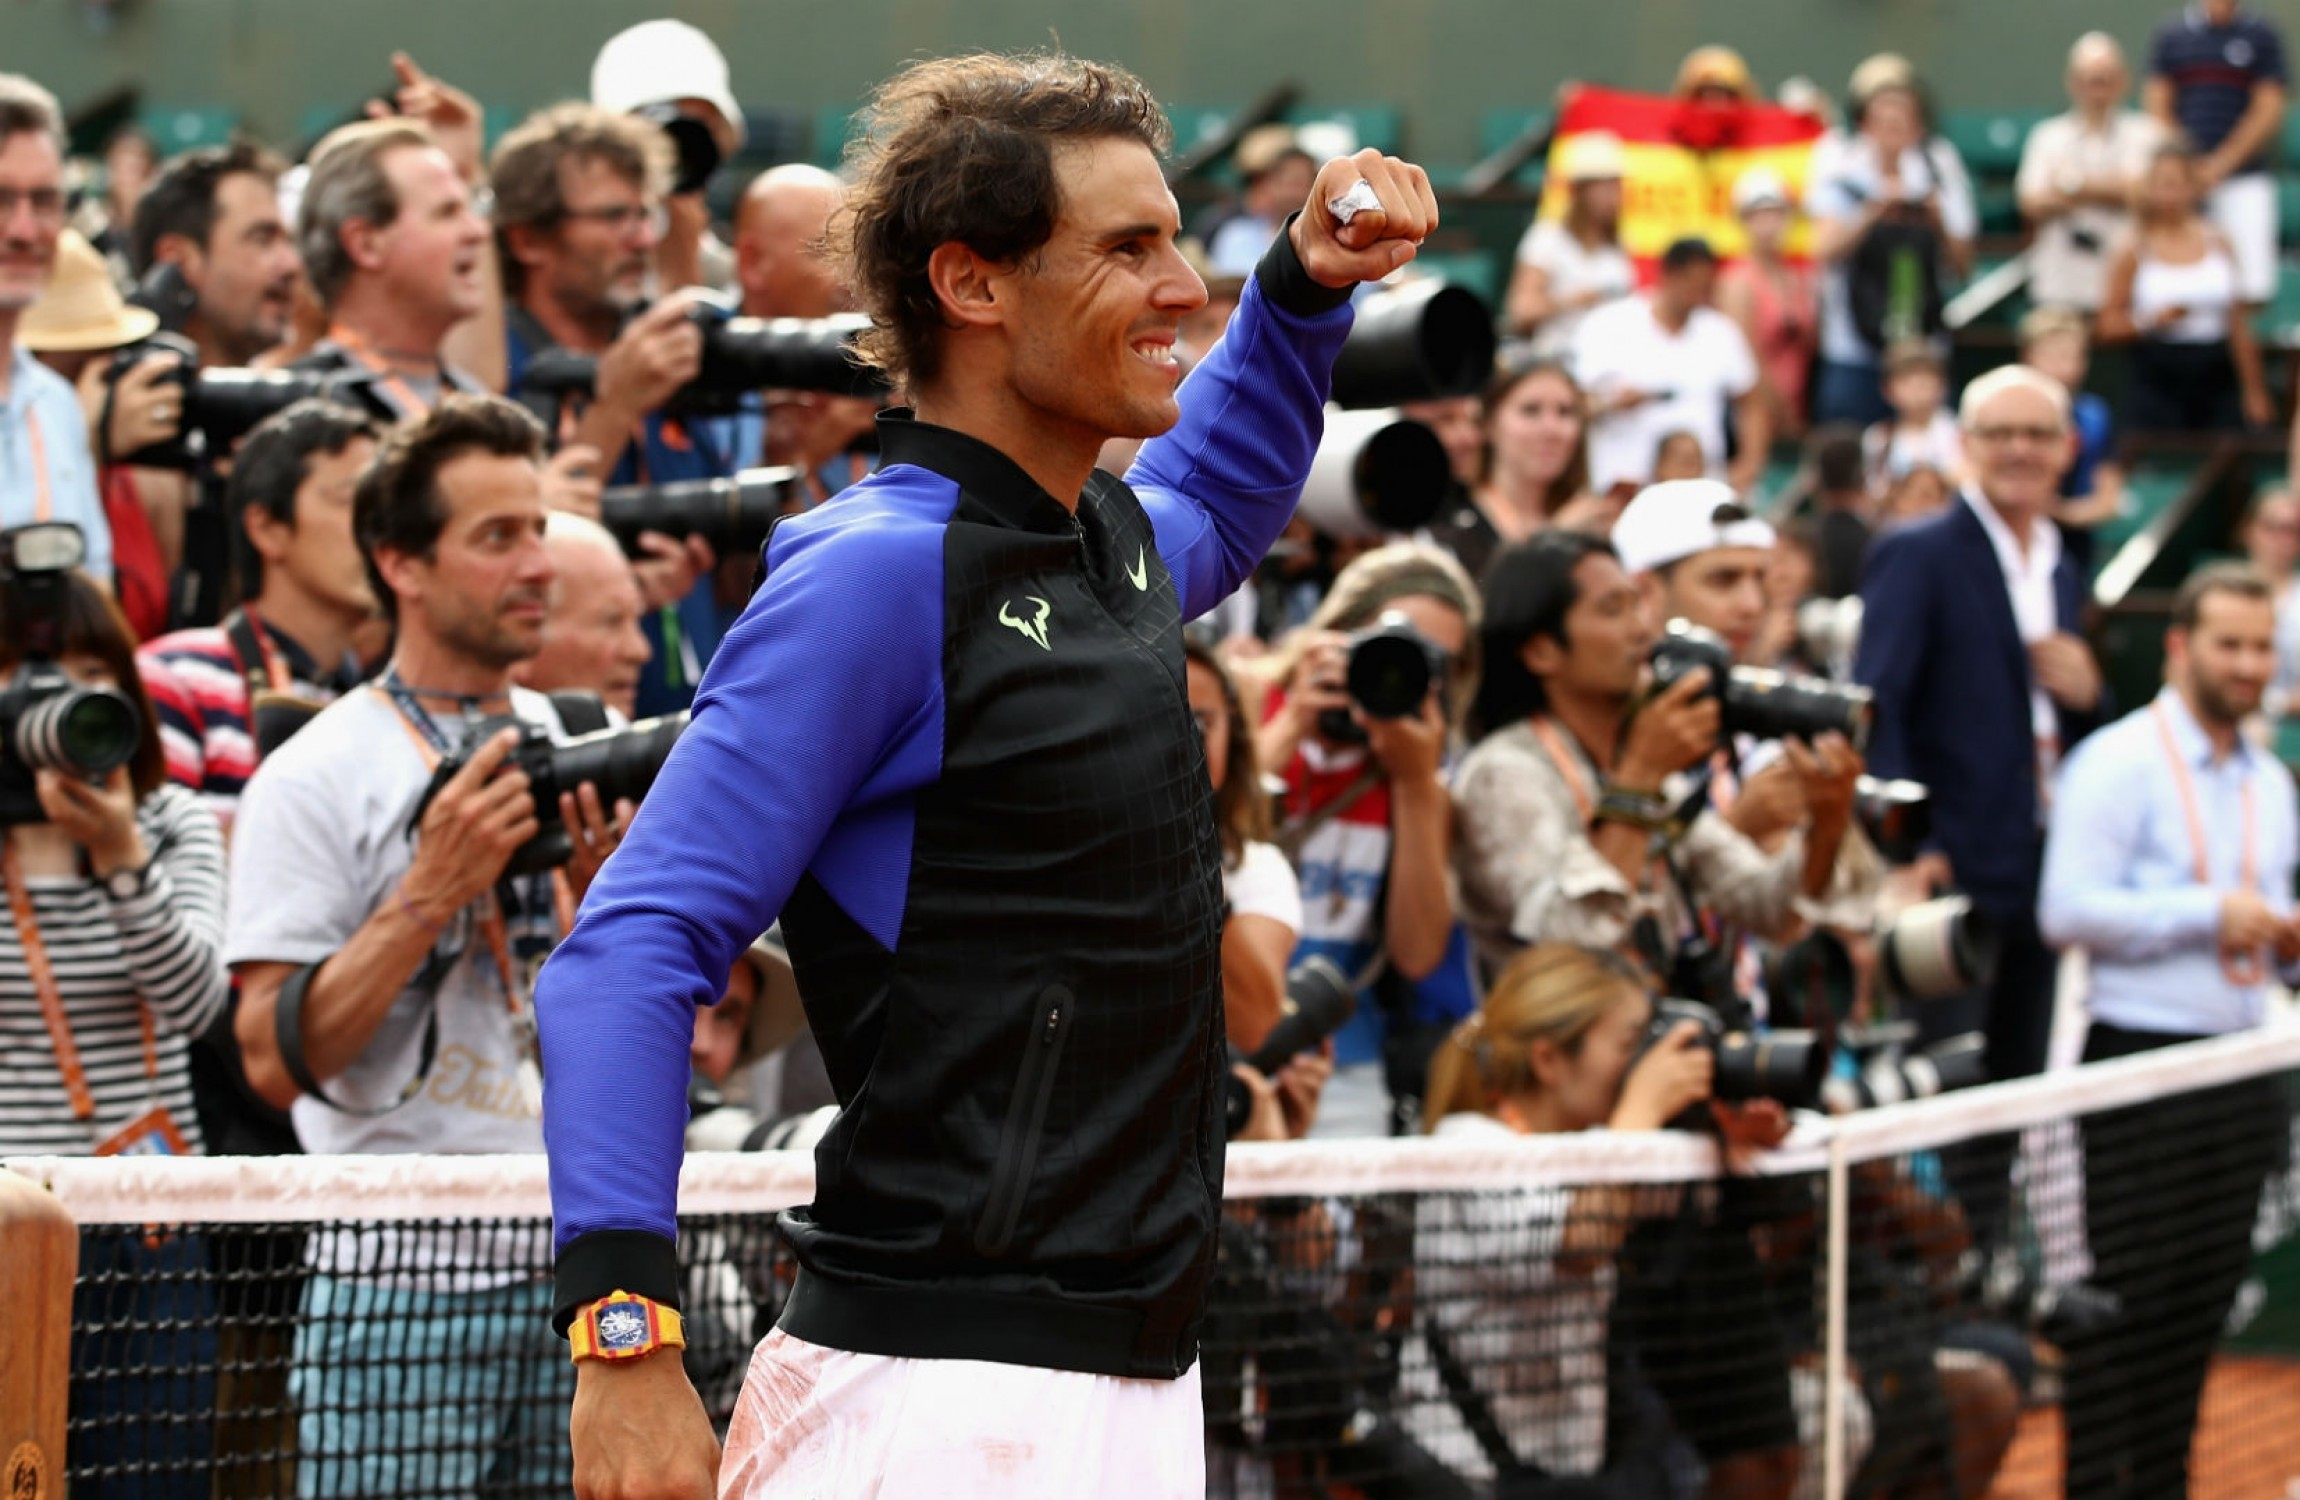 Nadal pulls out of Queen's after advice from doctors